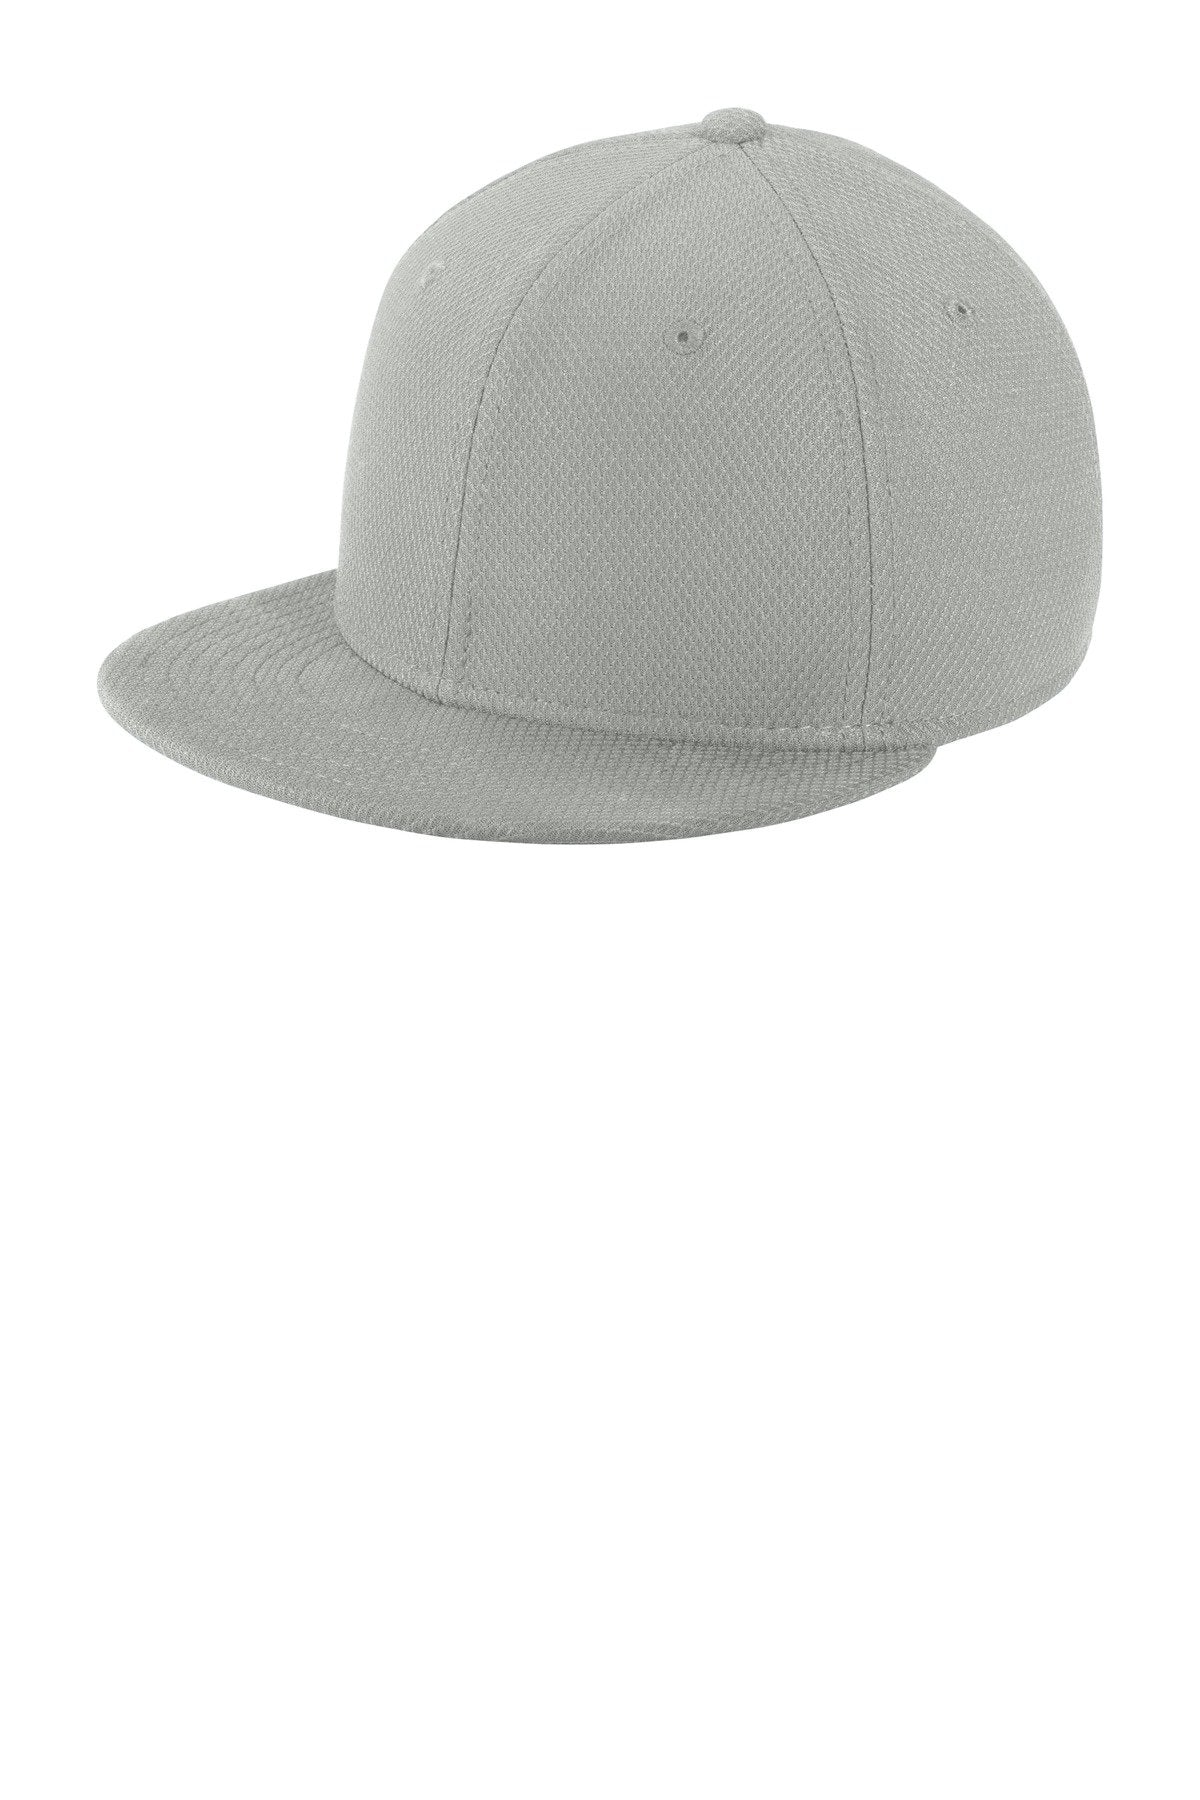 Grey - New Era NE304